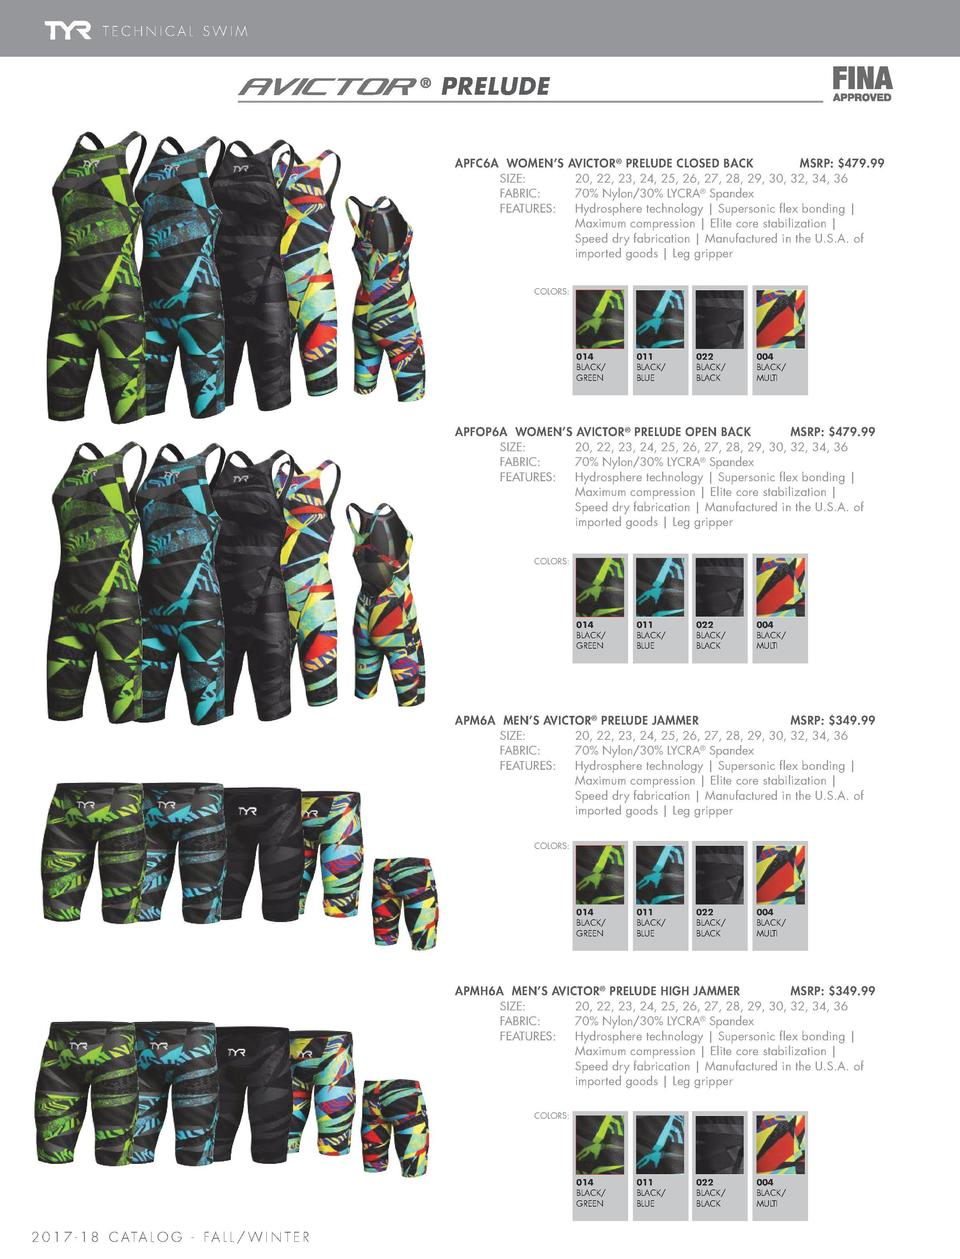 TECHNICAL SWIM  THRESHER         PRELUDE APFC6A WOMEN   S   SIZE     FABRIC     FEATURES                 AVICTOR    PRELUD...